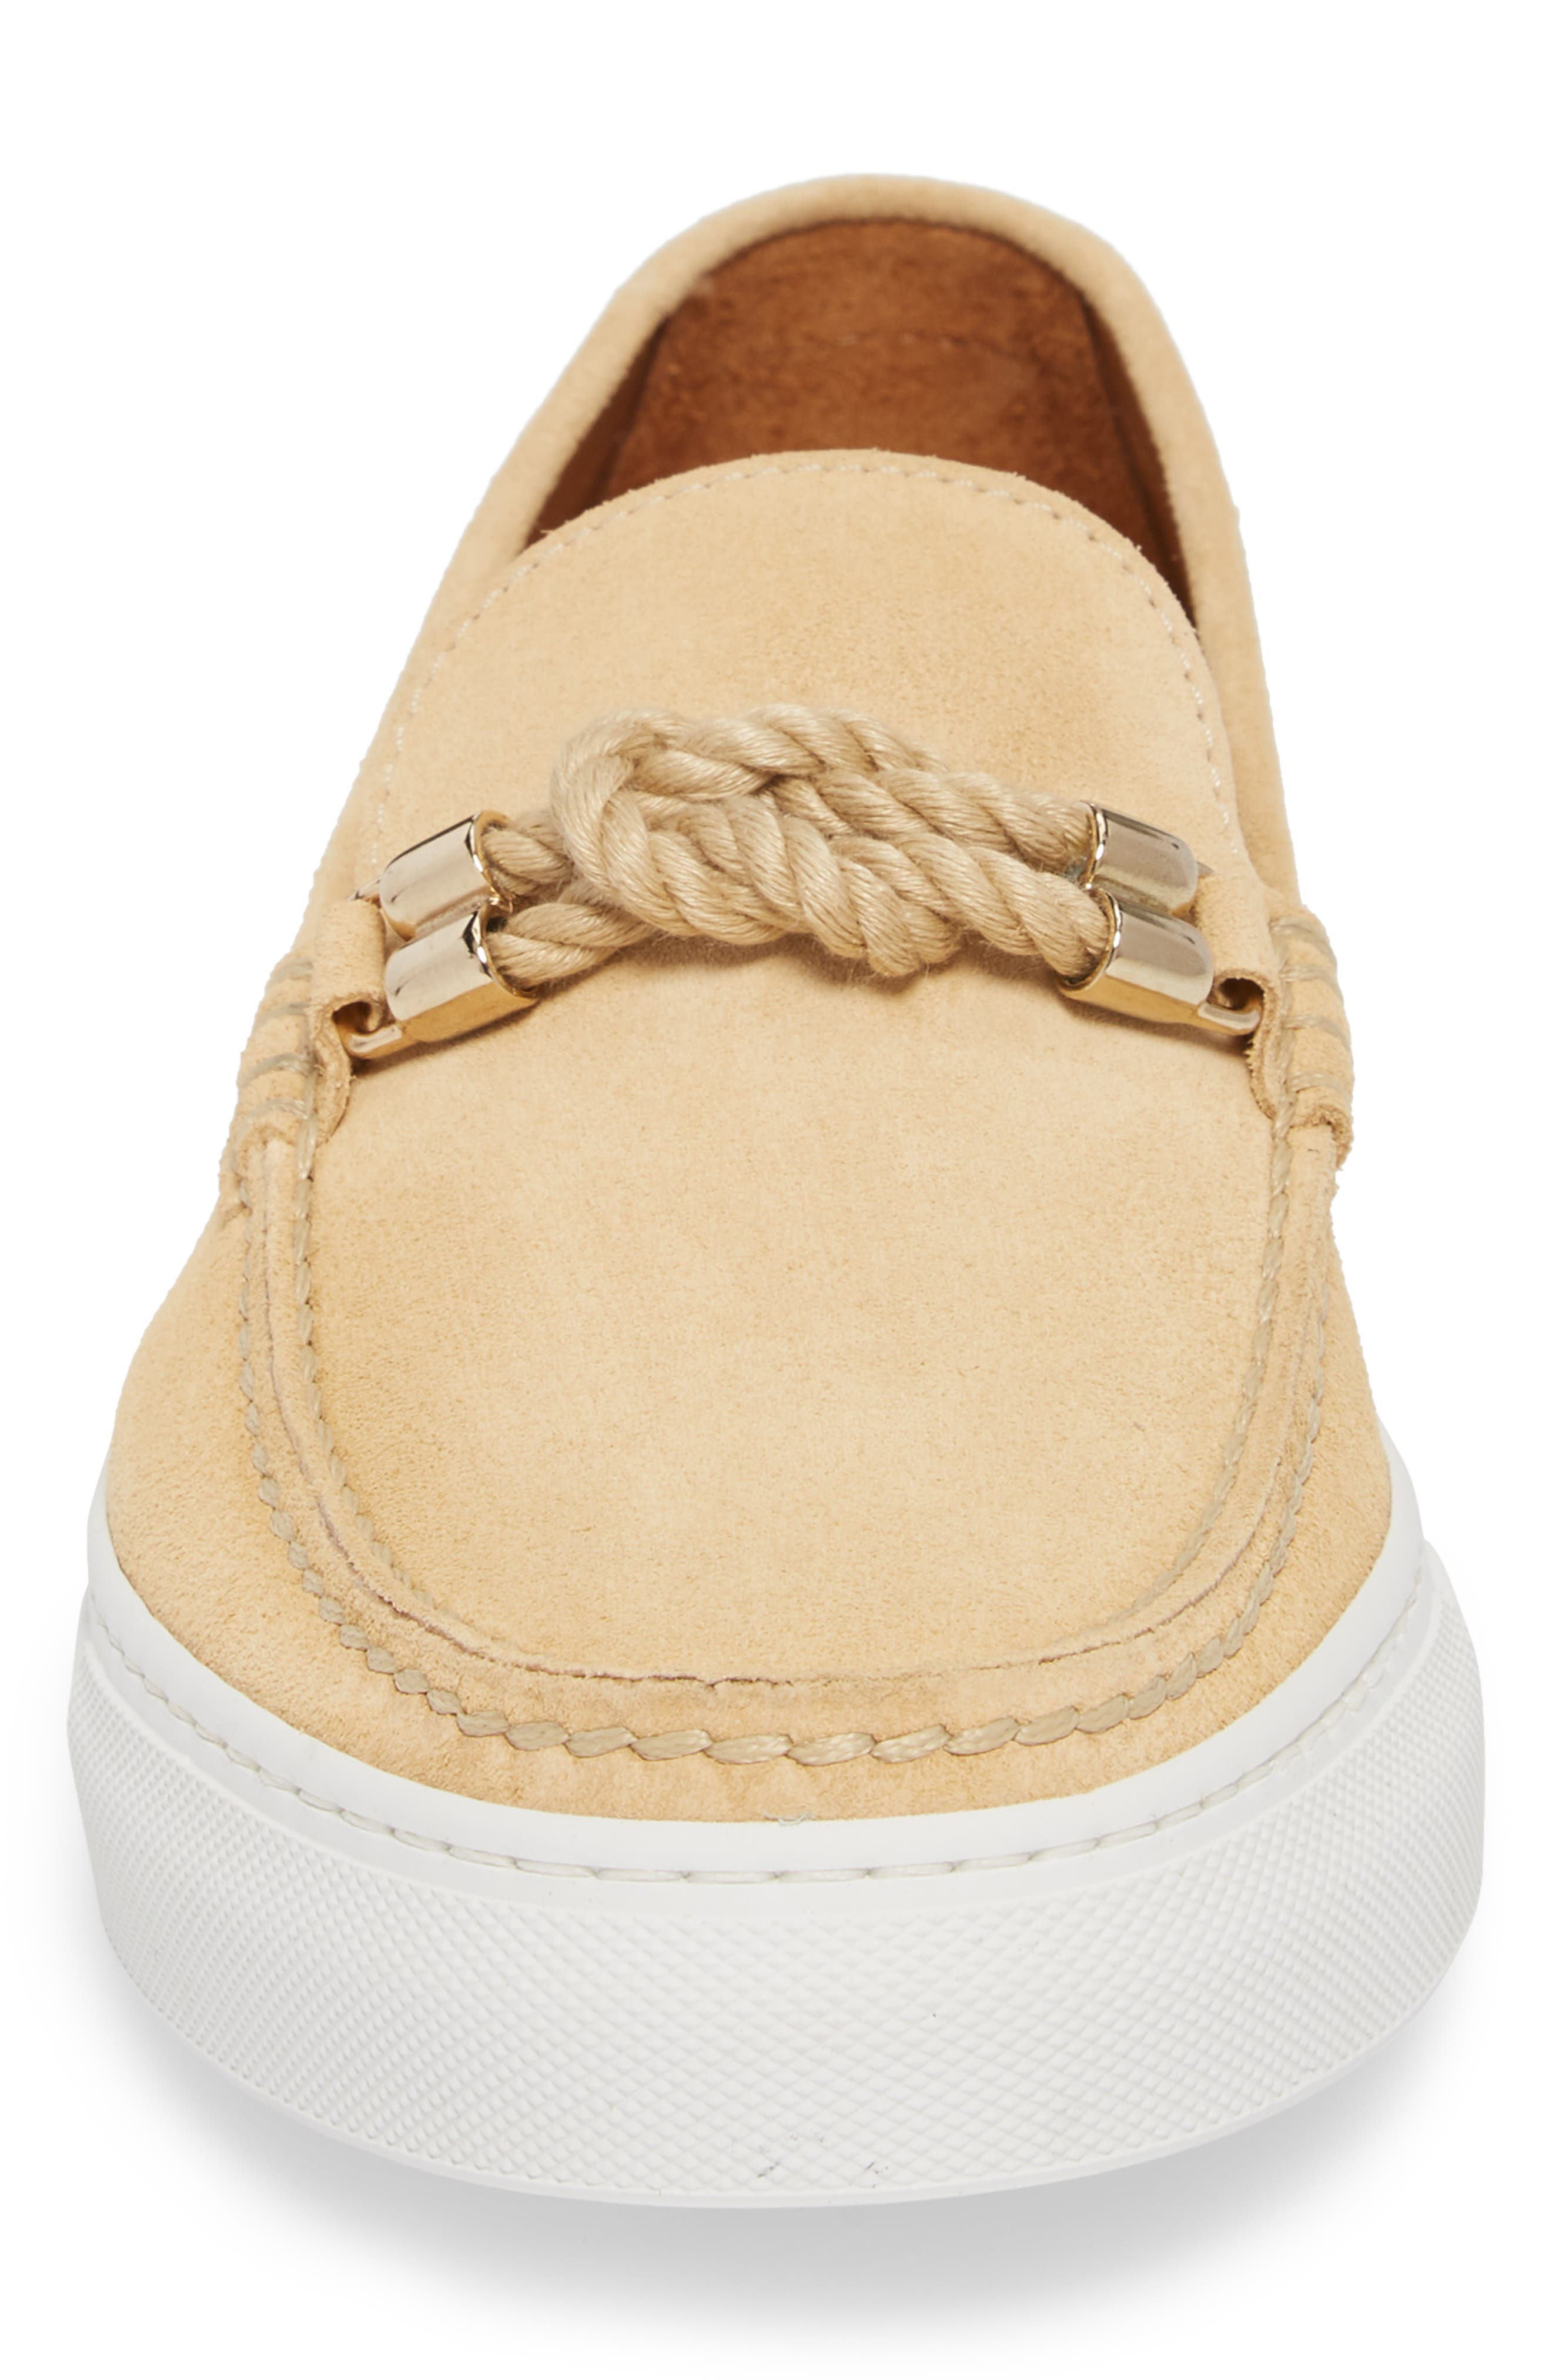 Bitton Square Knot Loafer,                             Alternate thumbnail 4, color,                             BEIGE SUEDE